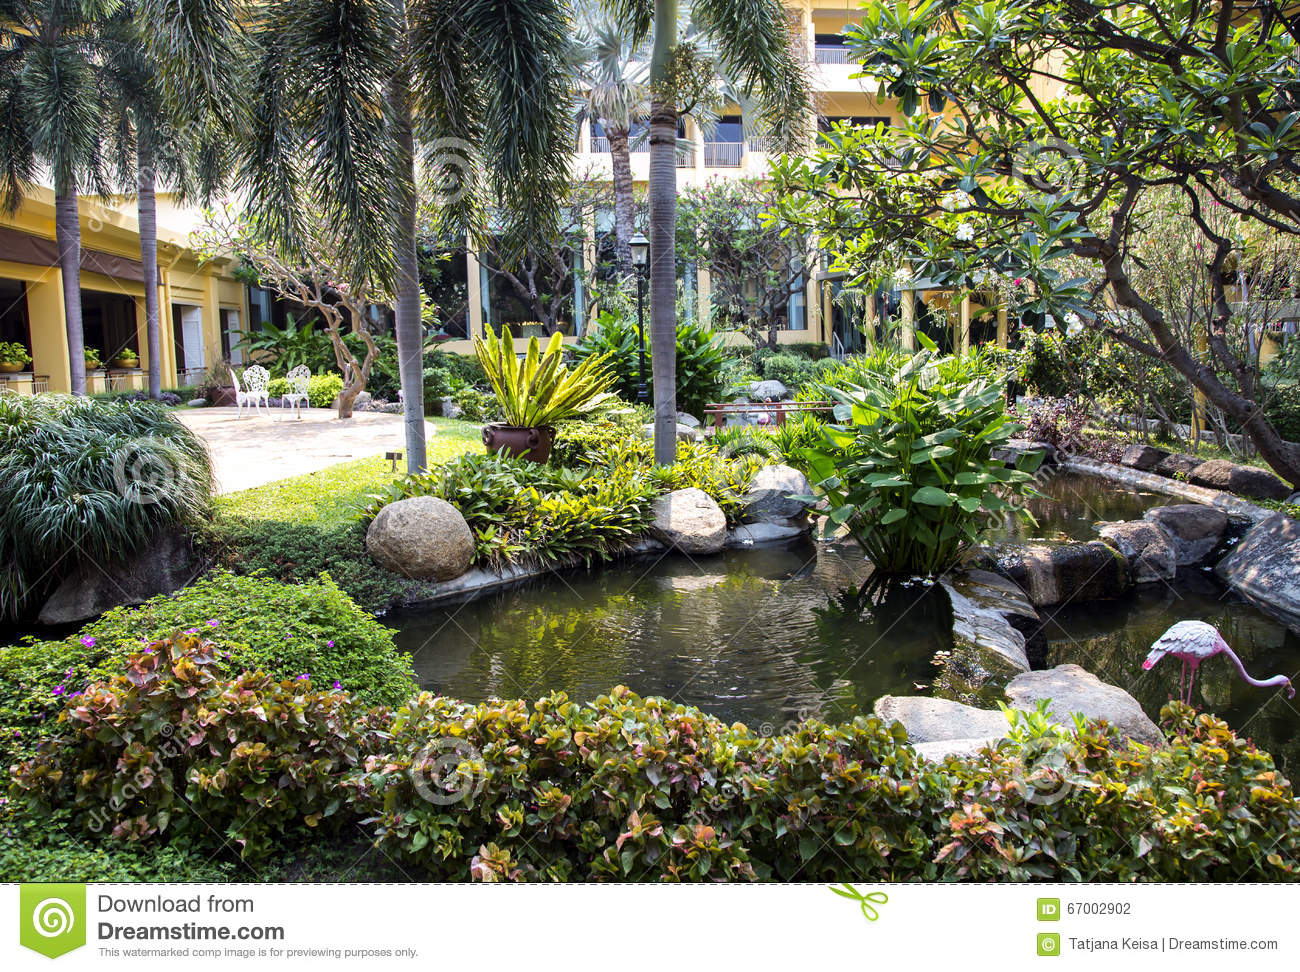 Piscine d corative dans un beau jardin tropical photo for Ornamental pond waterfall